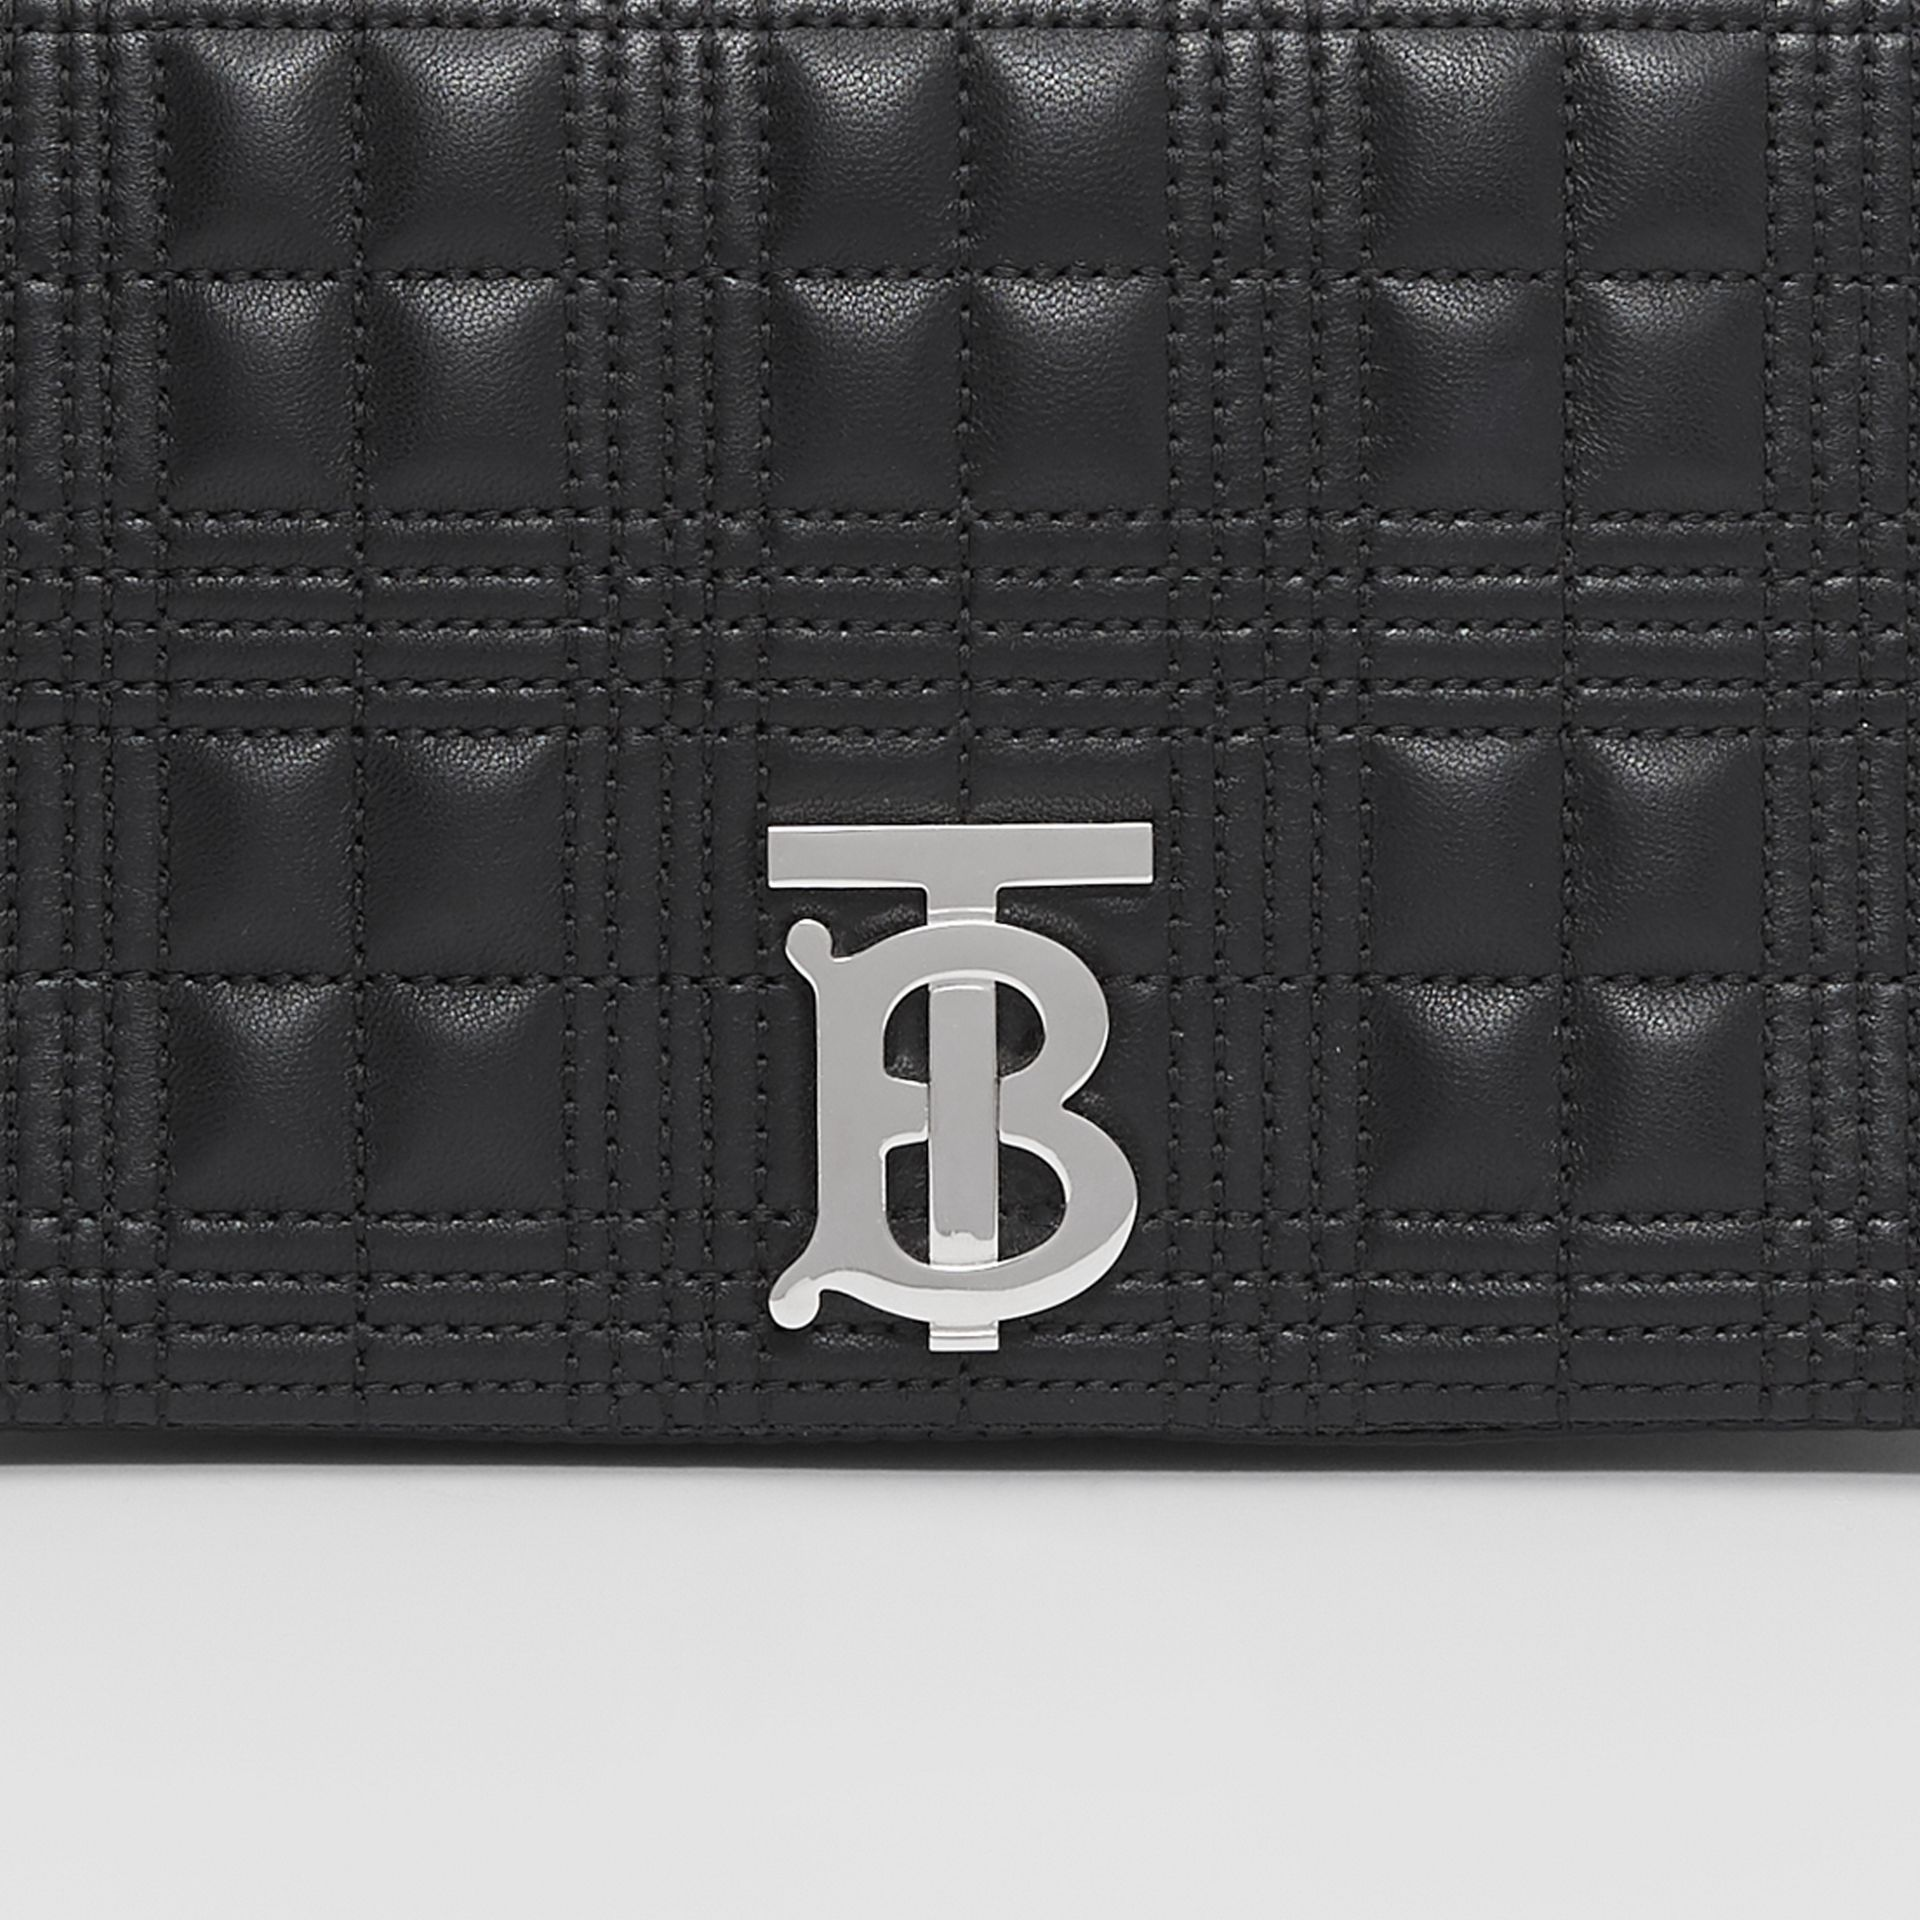 Small Crystal Detail Quilted Check Lambskin Lola Bag in Black - Women | Burberry - gallery image 1